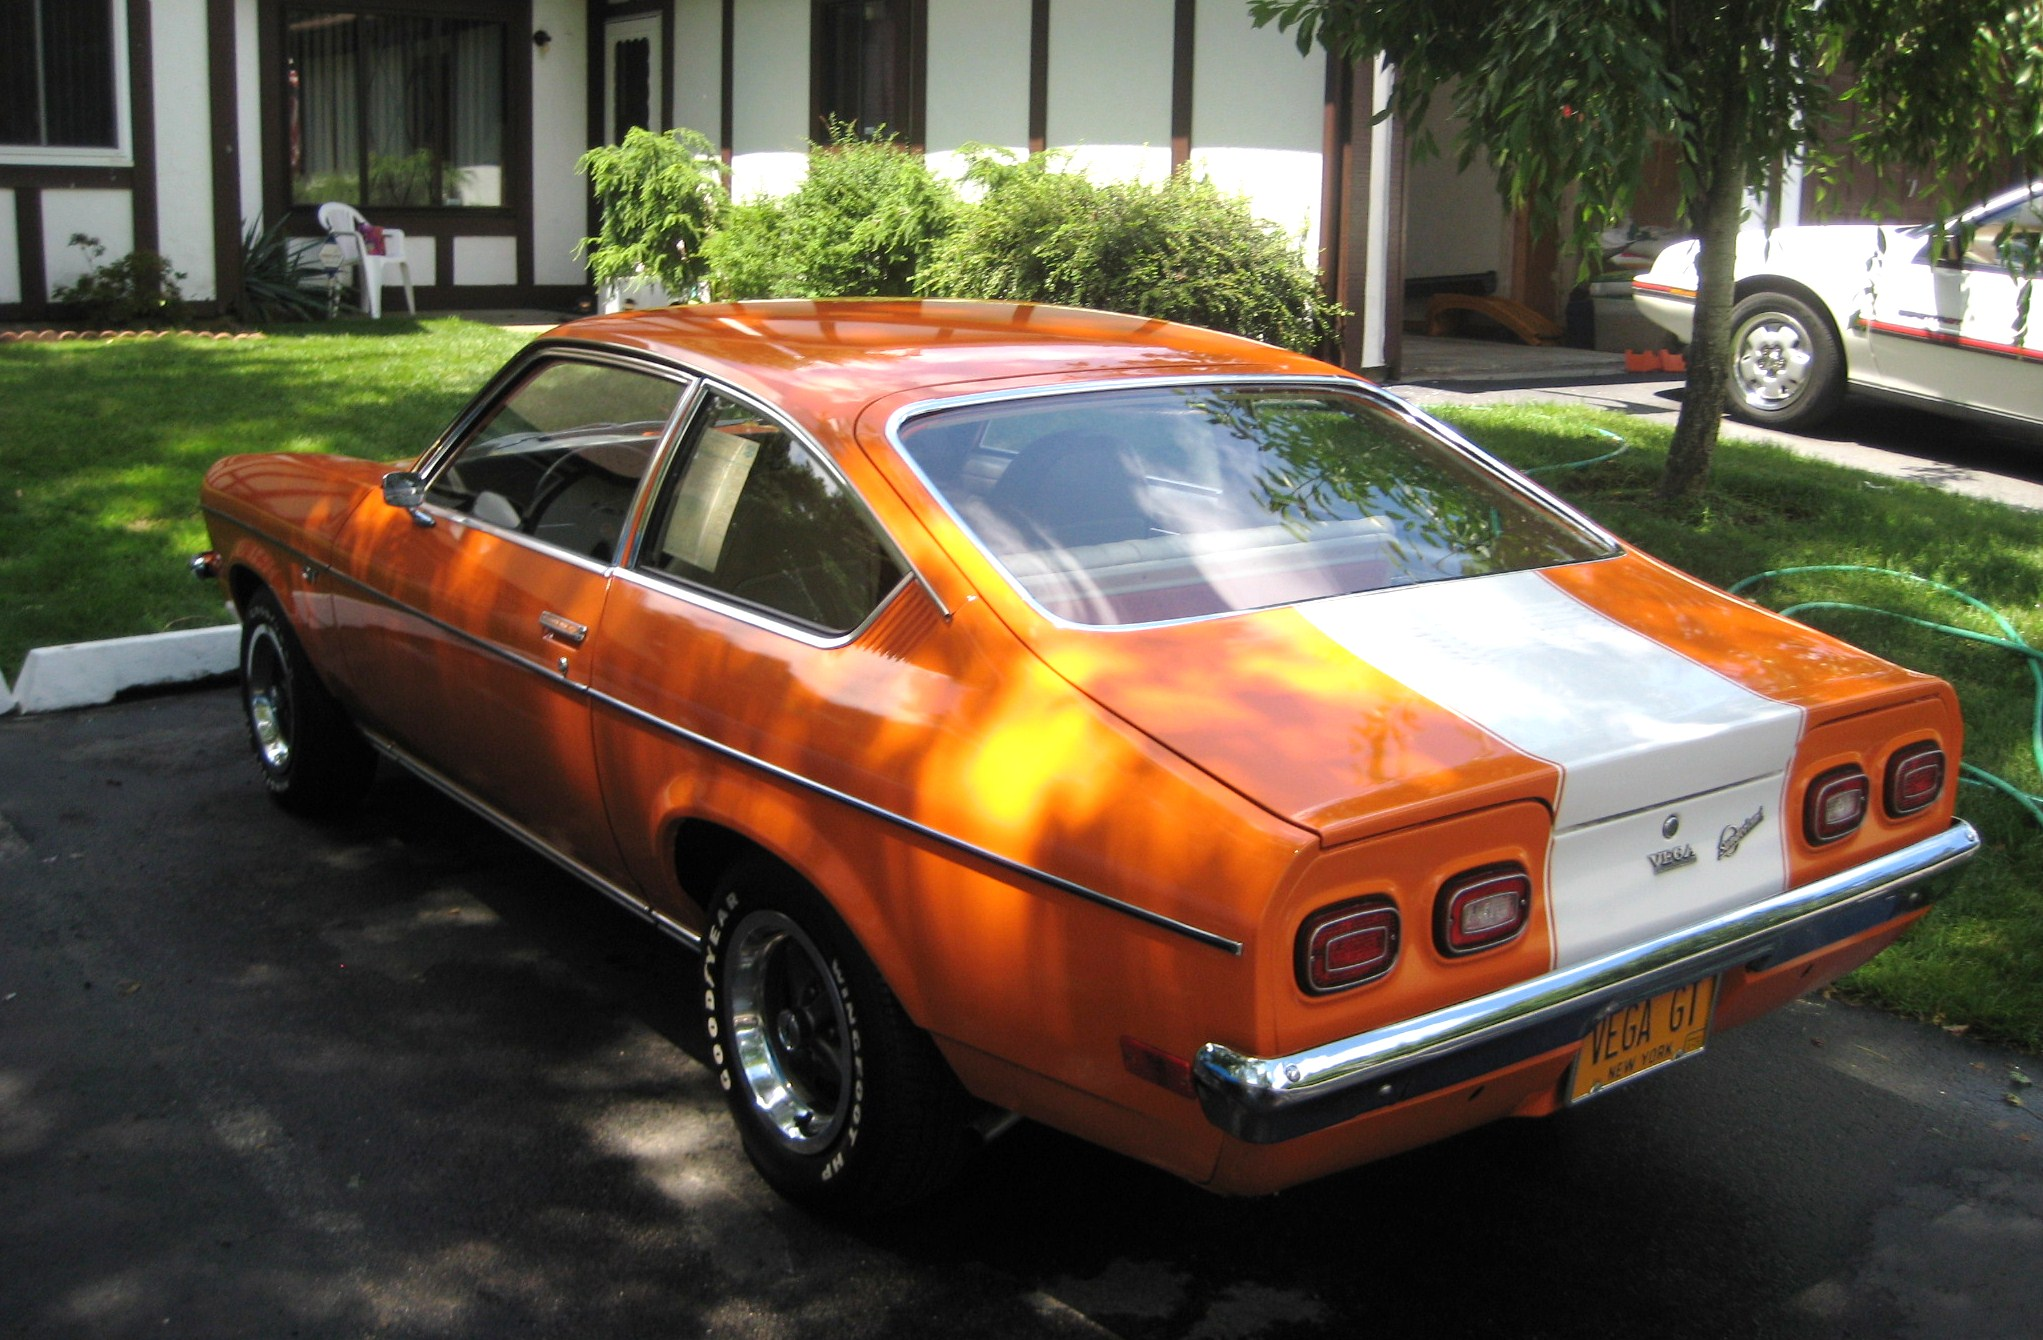 Cosworth Vega For Sale Craigslist >> 71 Vega GT for Sale http://forums.h-body.org/viewtopic.php?f=13&t ... Images - Frompo